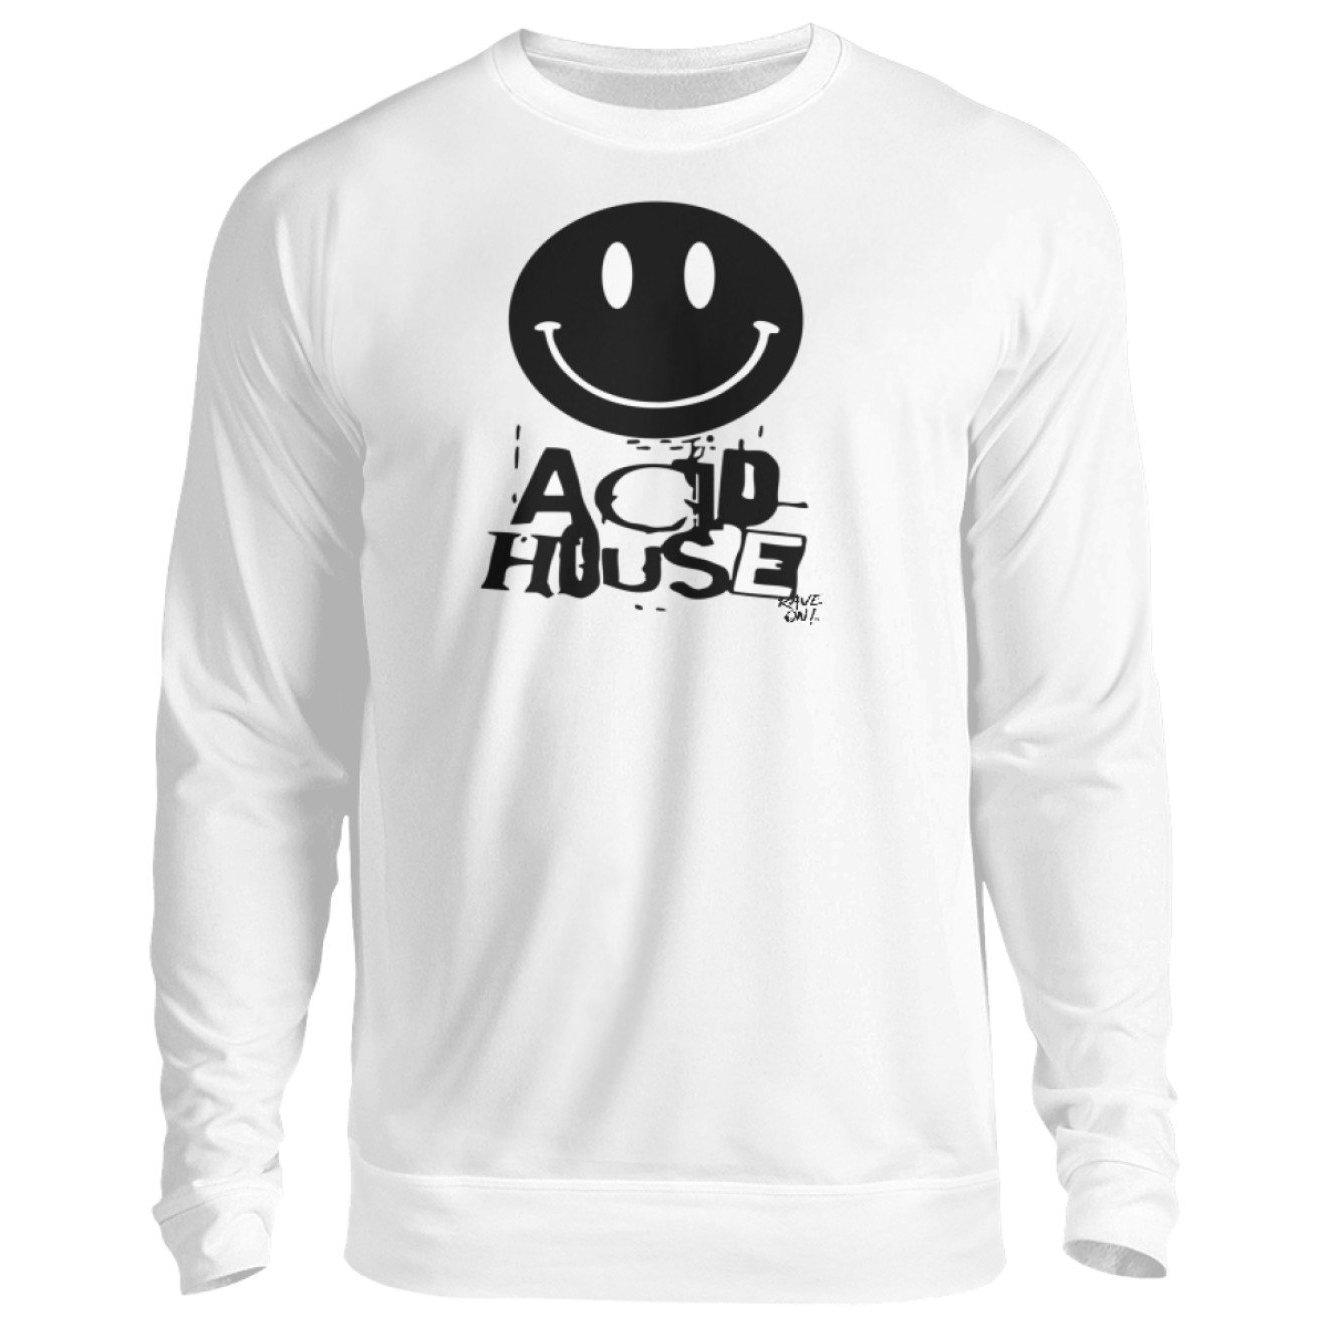 ACID HOUSE -Rave On!® - Unisex Pullover Unisex Sweatshirt Arctic White / S - Rave On!® the club & techno scene shop for cool young fashion streetwear style & fashion outfits + sexy festival 420 stuff